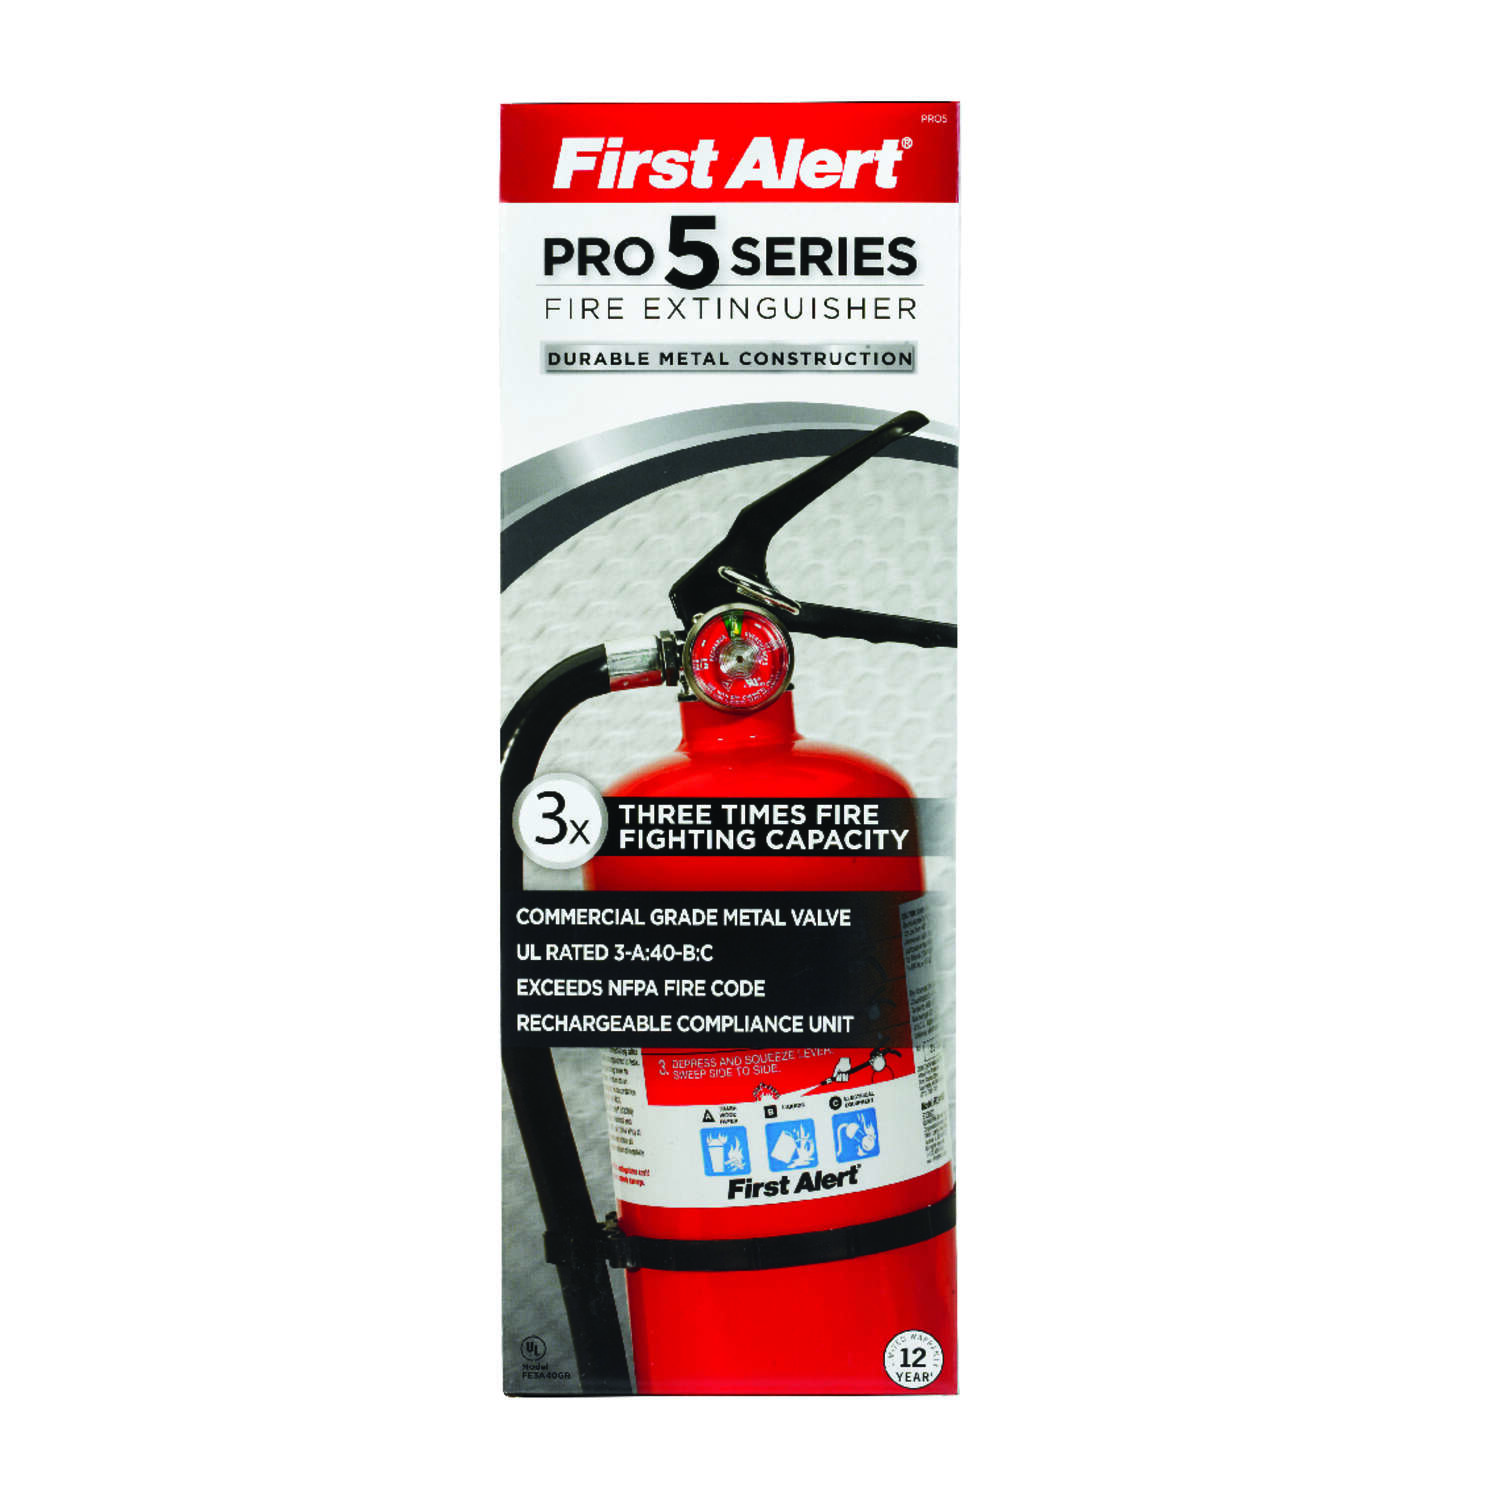 First Alert 5 lb. Fire Extinguisher For Household OSHA/US Coast Guard Agency Approval